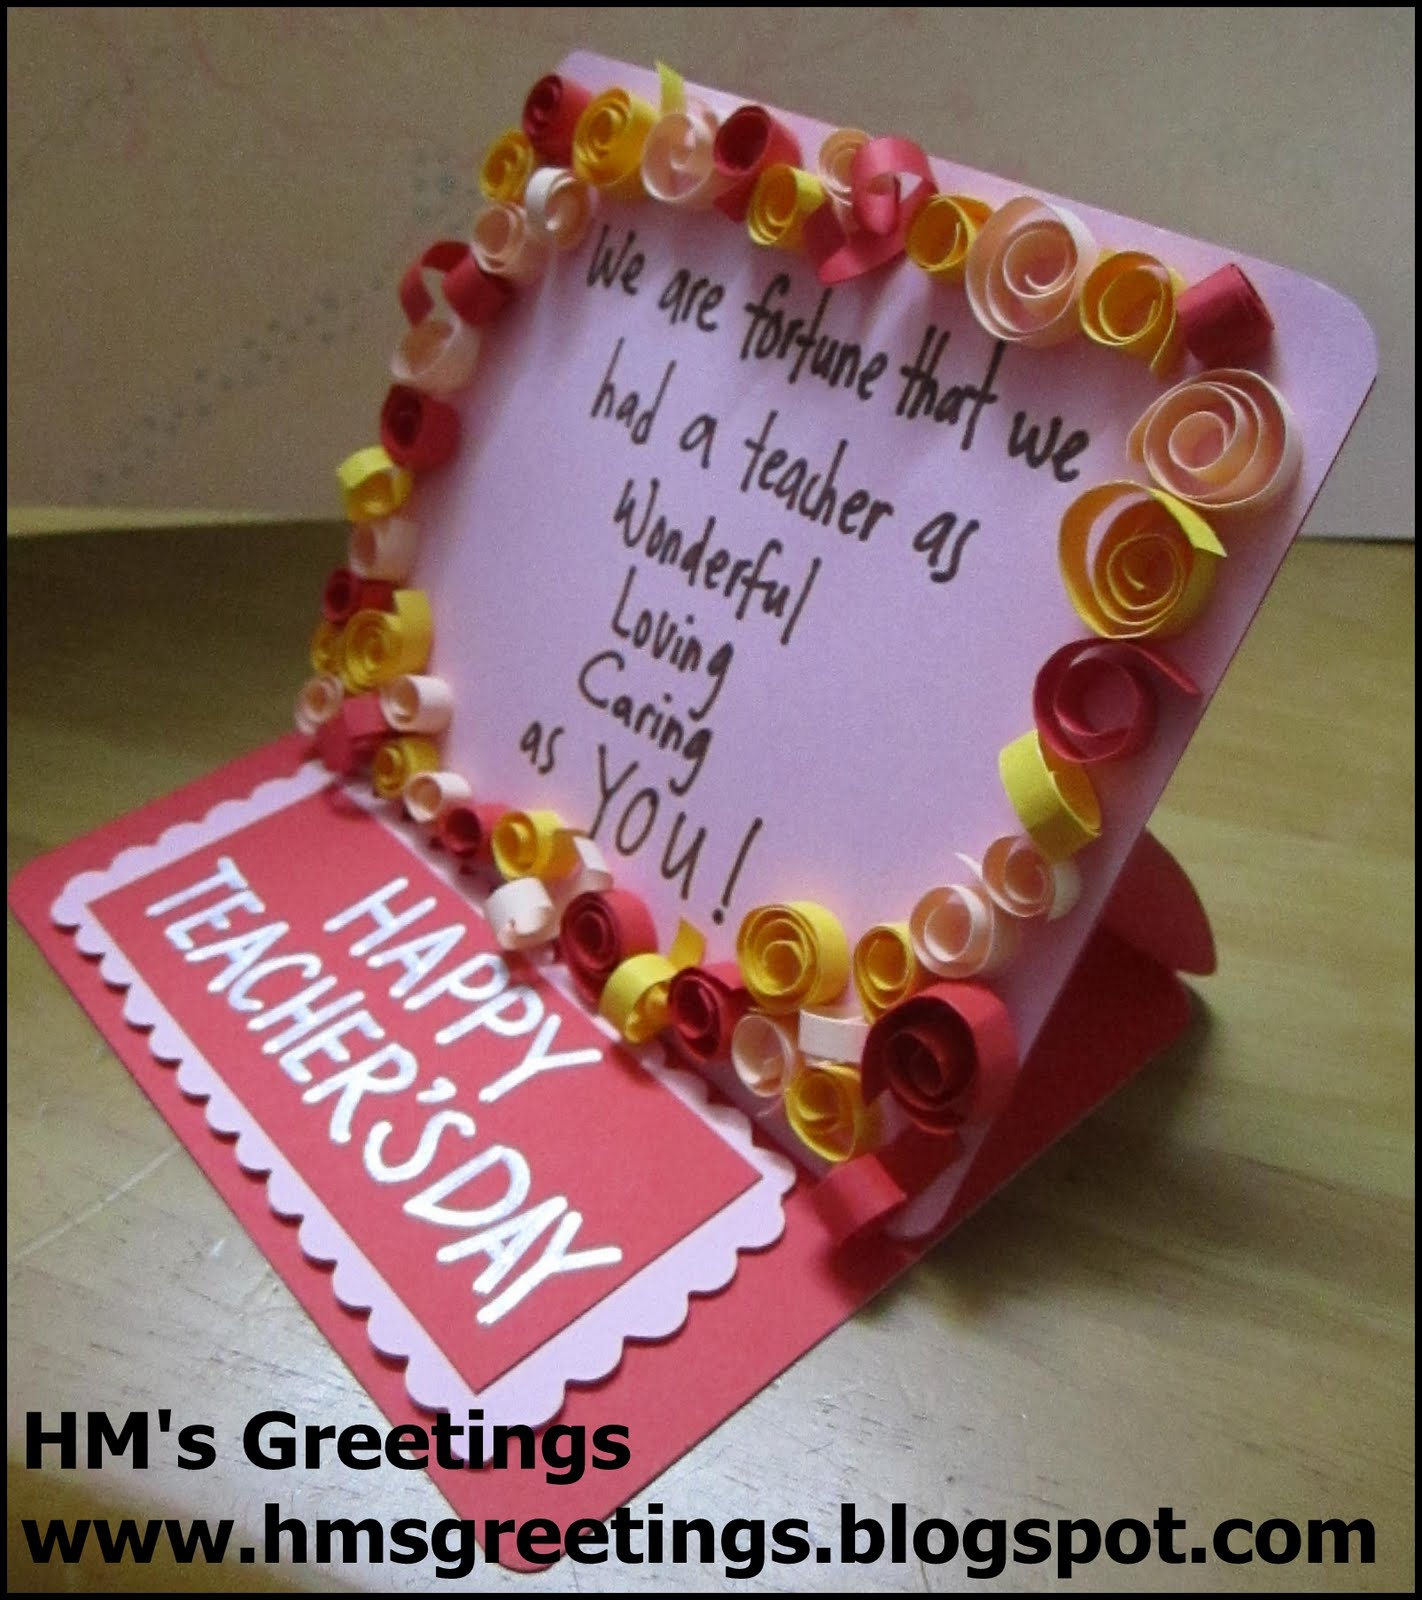 Hms greetings may 2011 happy teachers day card 1 kristyandbryce Image collections